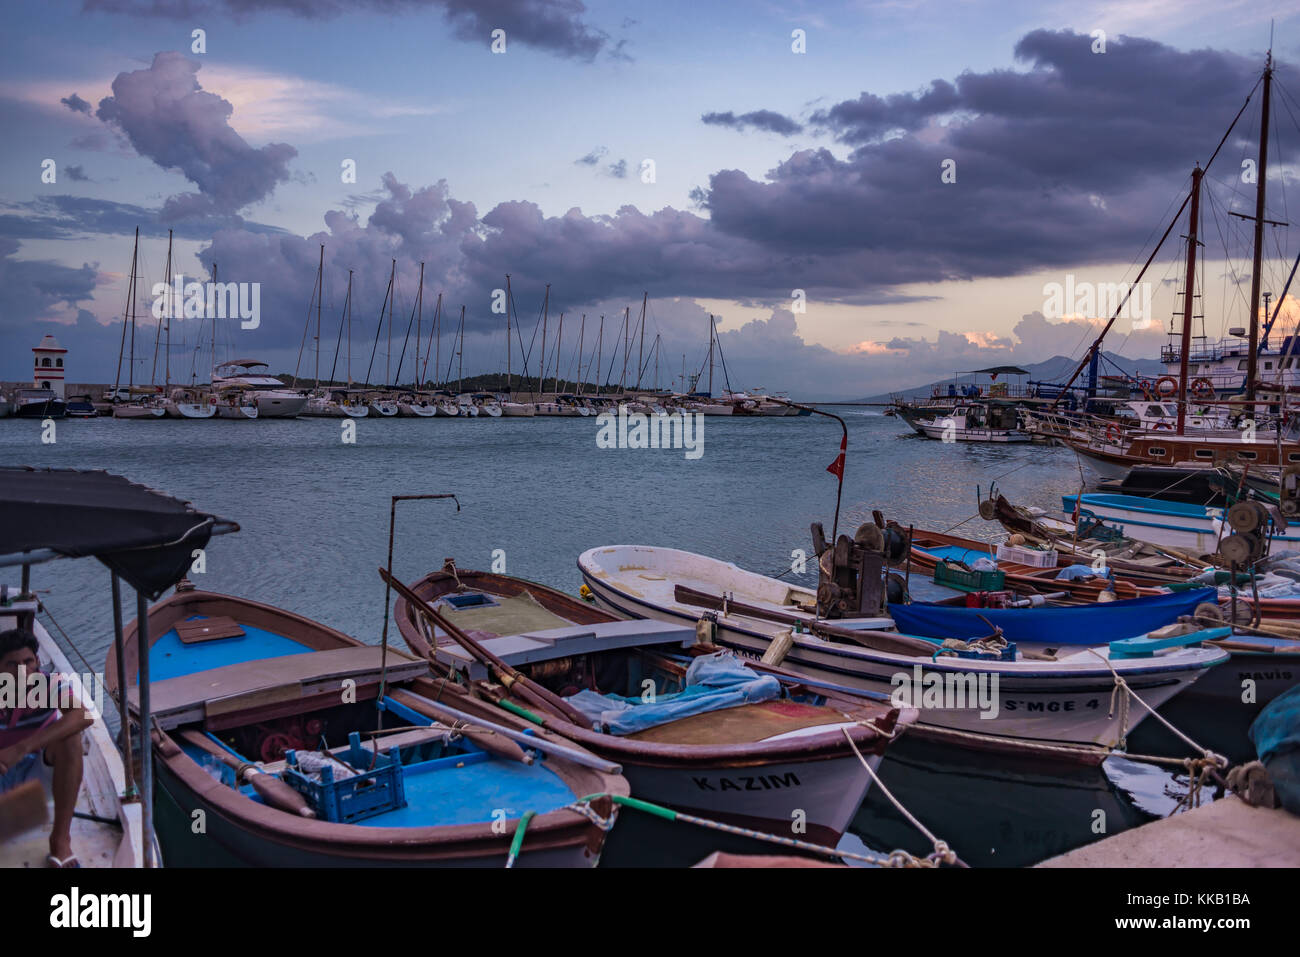 July 27, 2017 - Urla, Izmir province, Turkey: View at Iskele at night - Stock Image